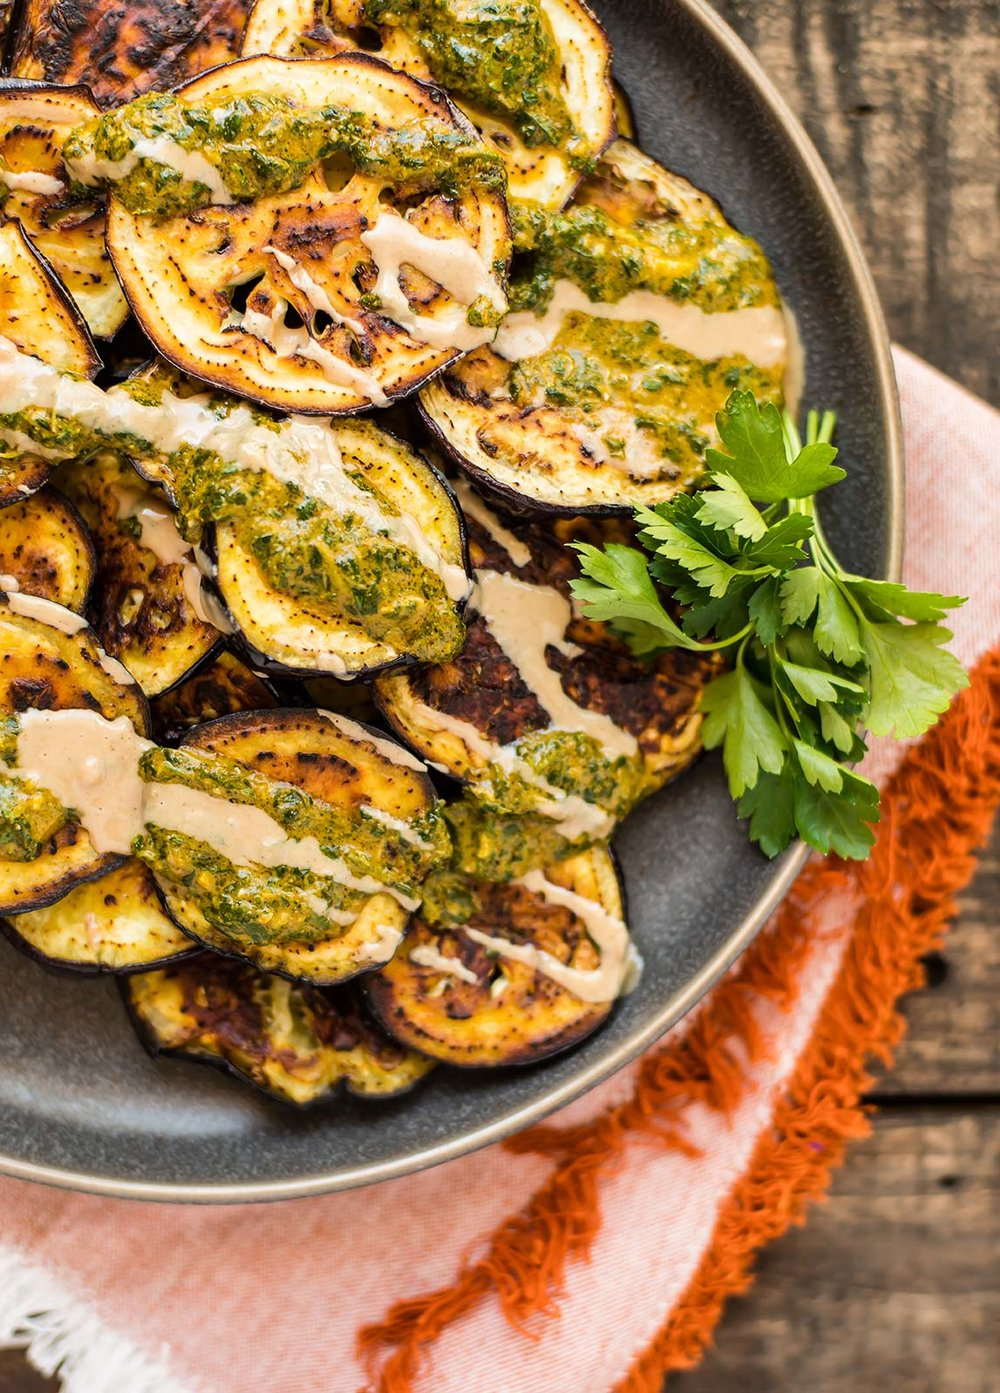 Roasted Eggplant with Charmoula Sauce